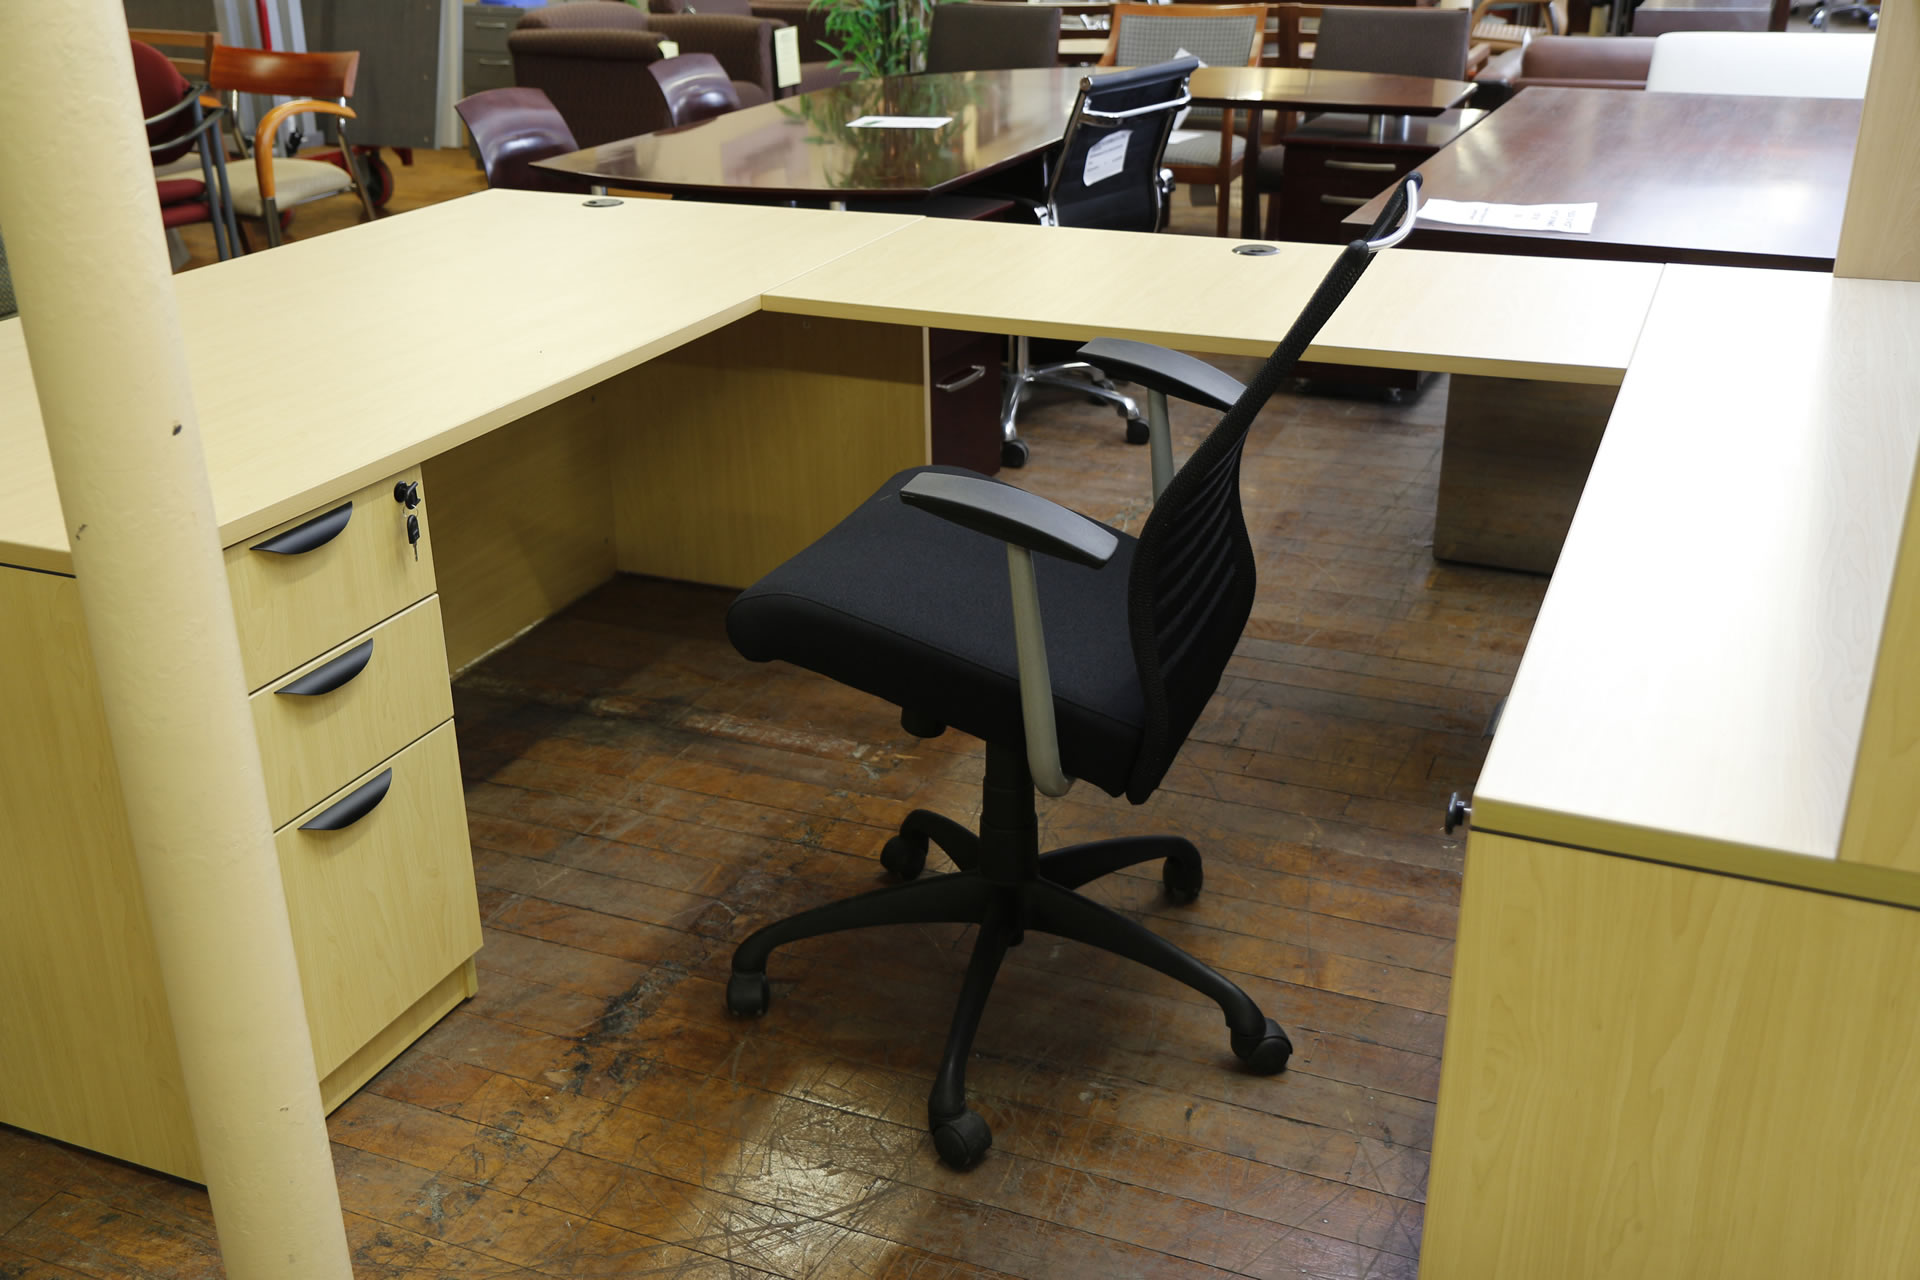 peartreeofficefurniture_peartreeofficefurniture_peartreeofficefurniture_2015-06-18_20-13-33.jpg